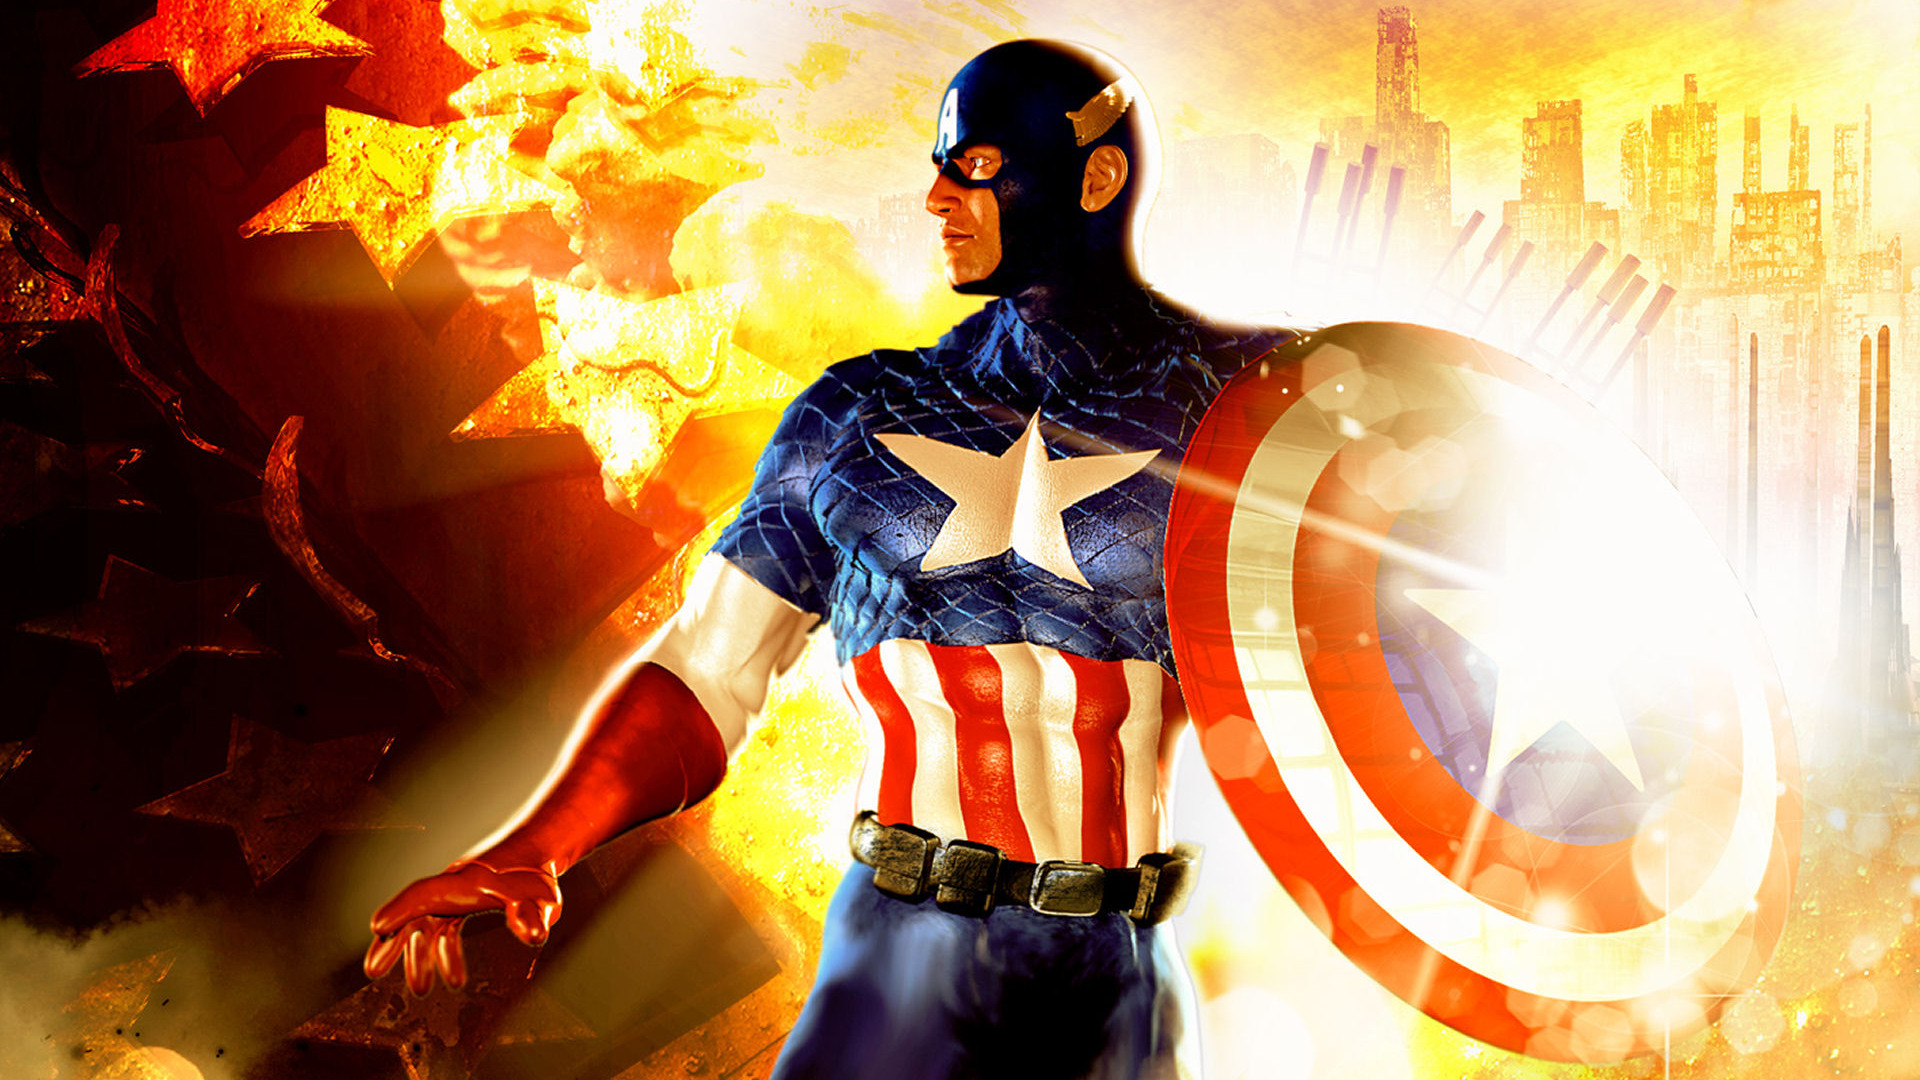 Captain America Full Hd Wallpaper: High Quality Captain America Wallpaper